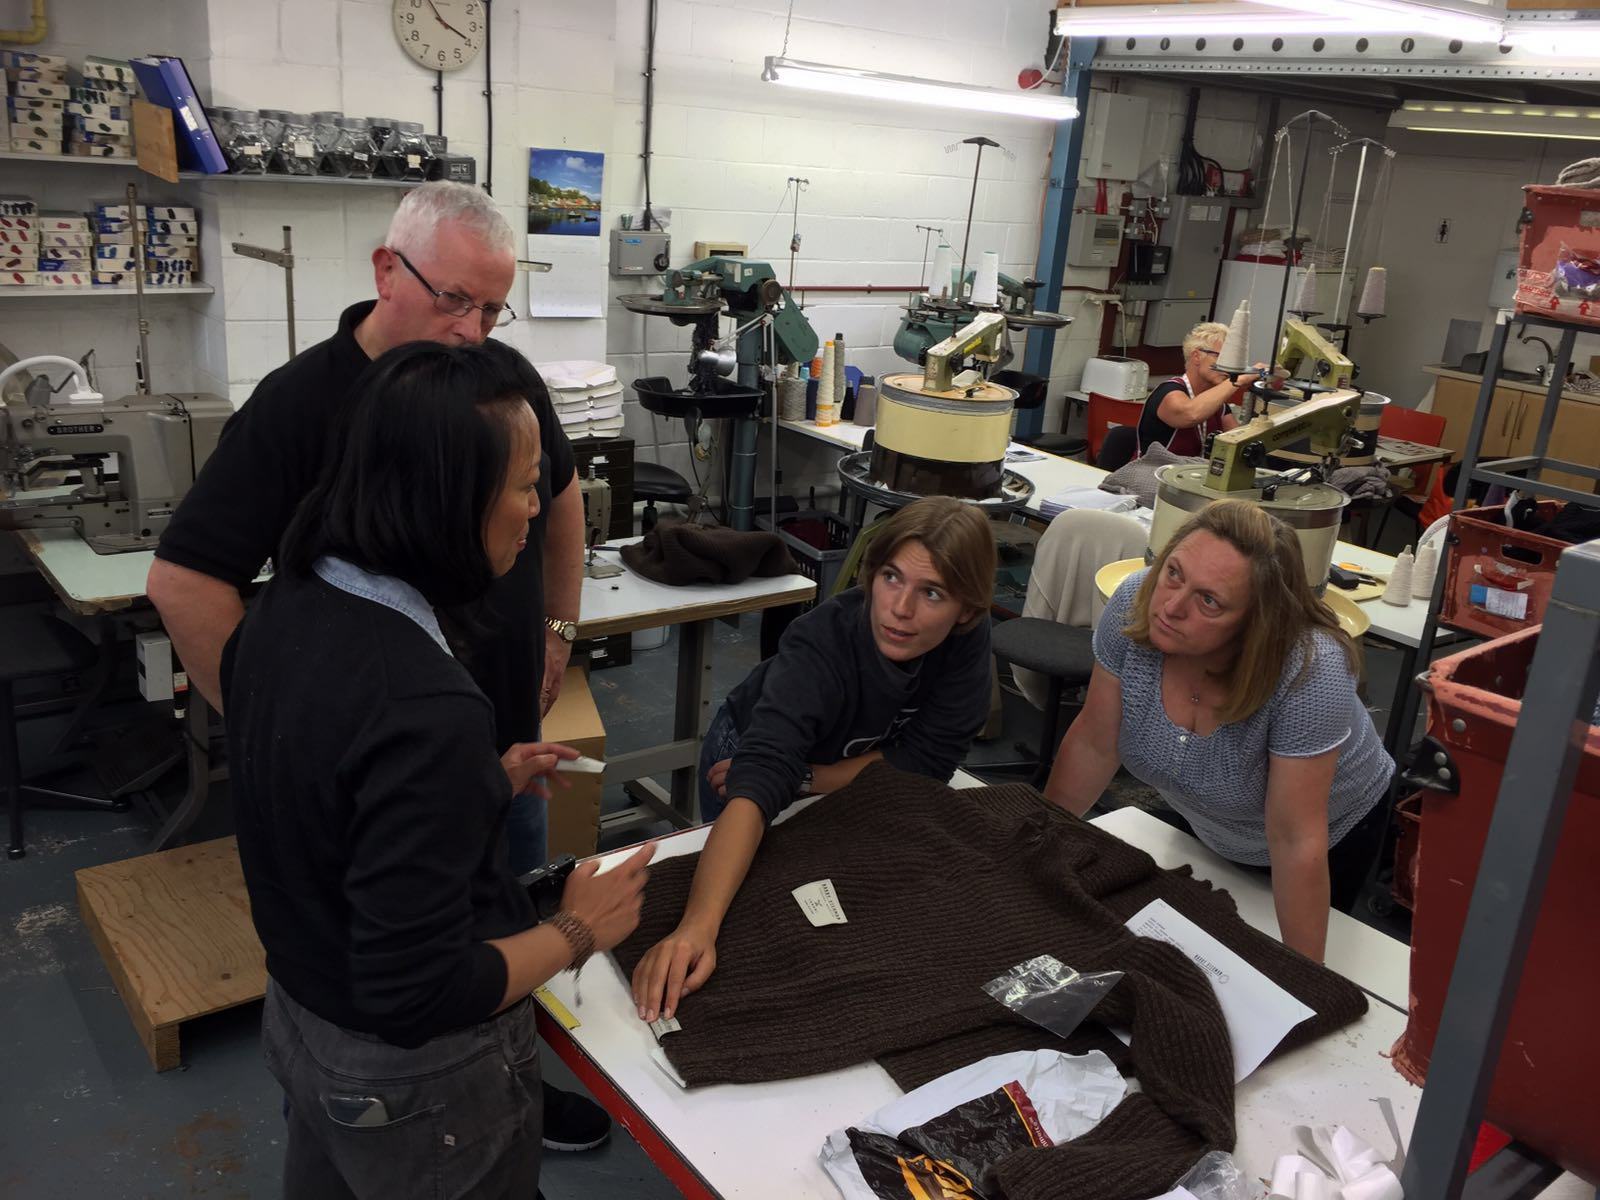 Nancy Johnston, Tengri CEO, and Amy Greenland, Harry Stedman designer, meeting the team in Scotland to discuss the finishing details for The Mariner sweater